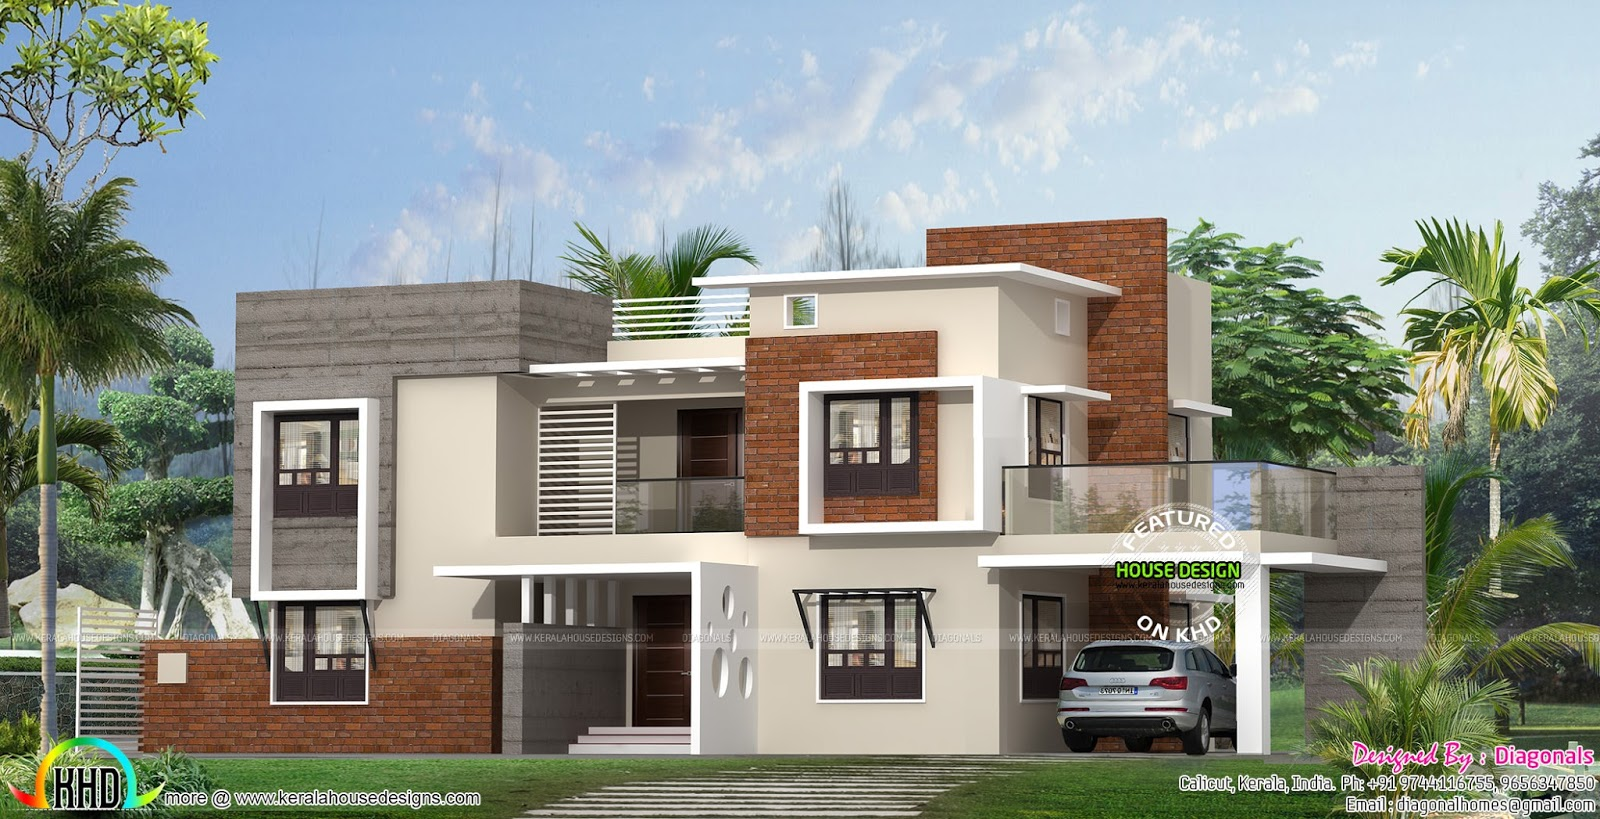 Box model modern flat roof home plan kerala home design Best home designs of 2014